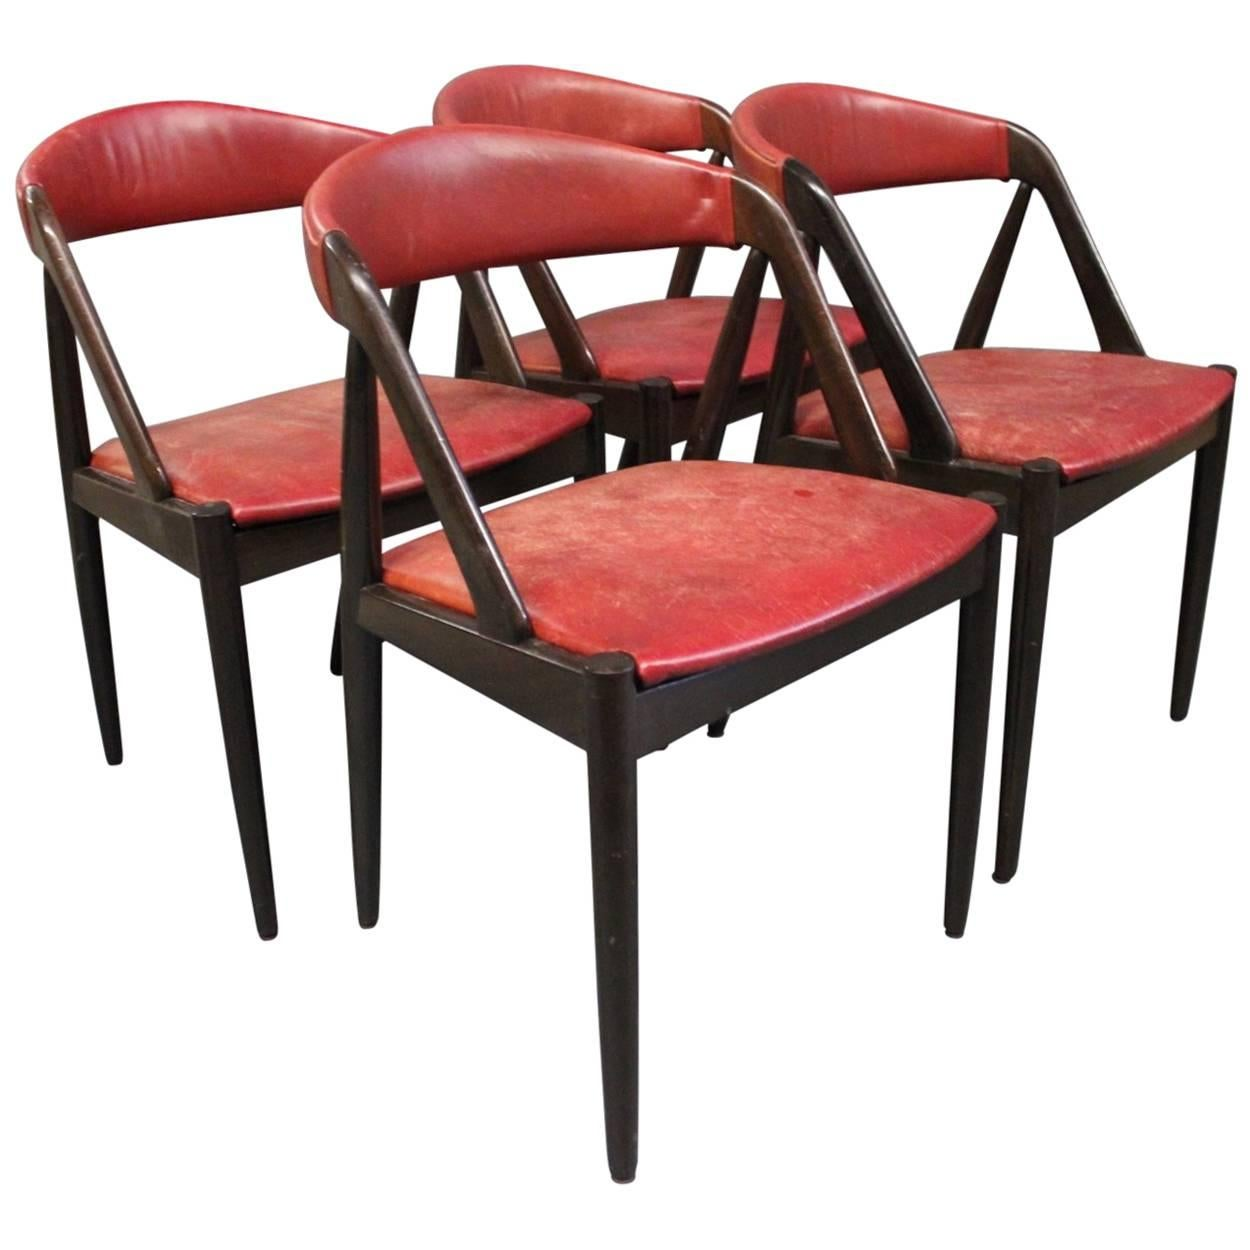 Set of Four Dining Room Chairs, Model 31 by Kai Kristiansen, 1960s